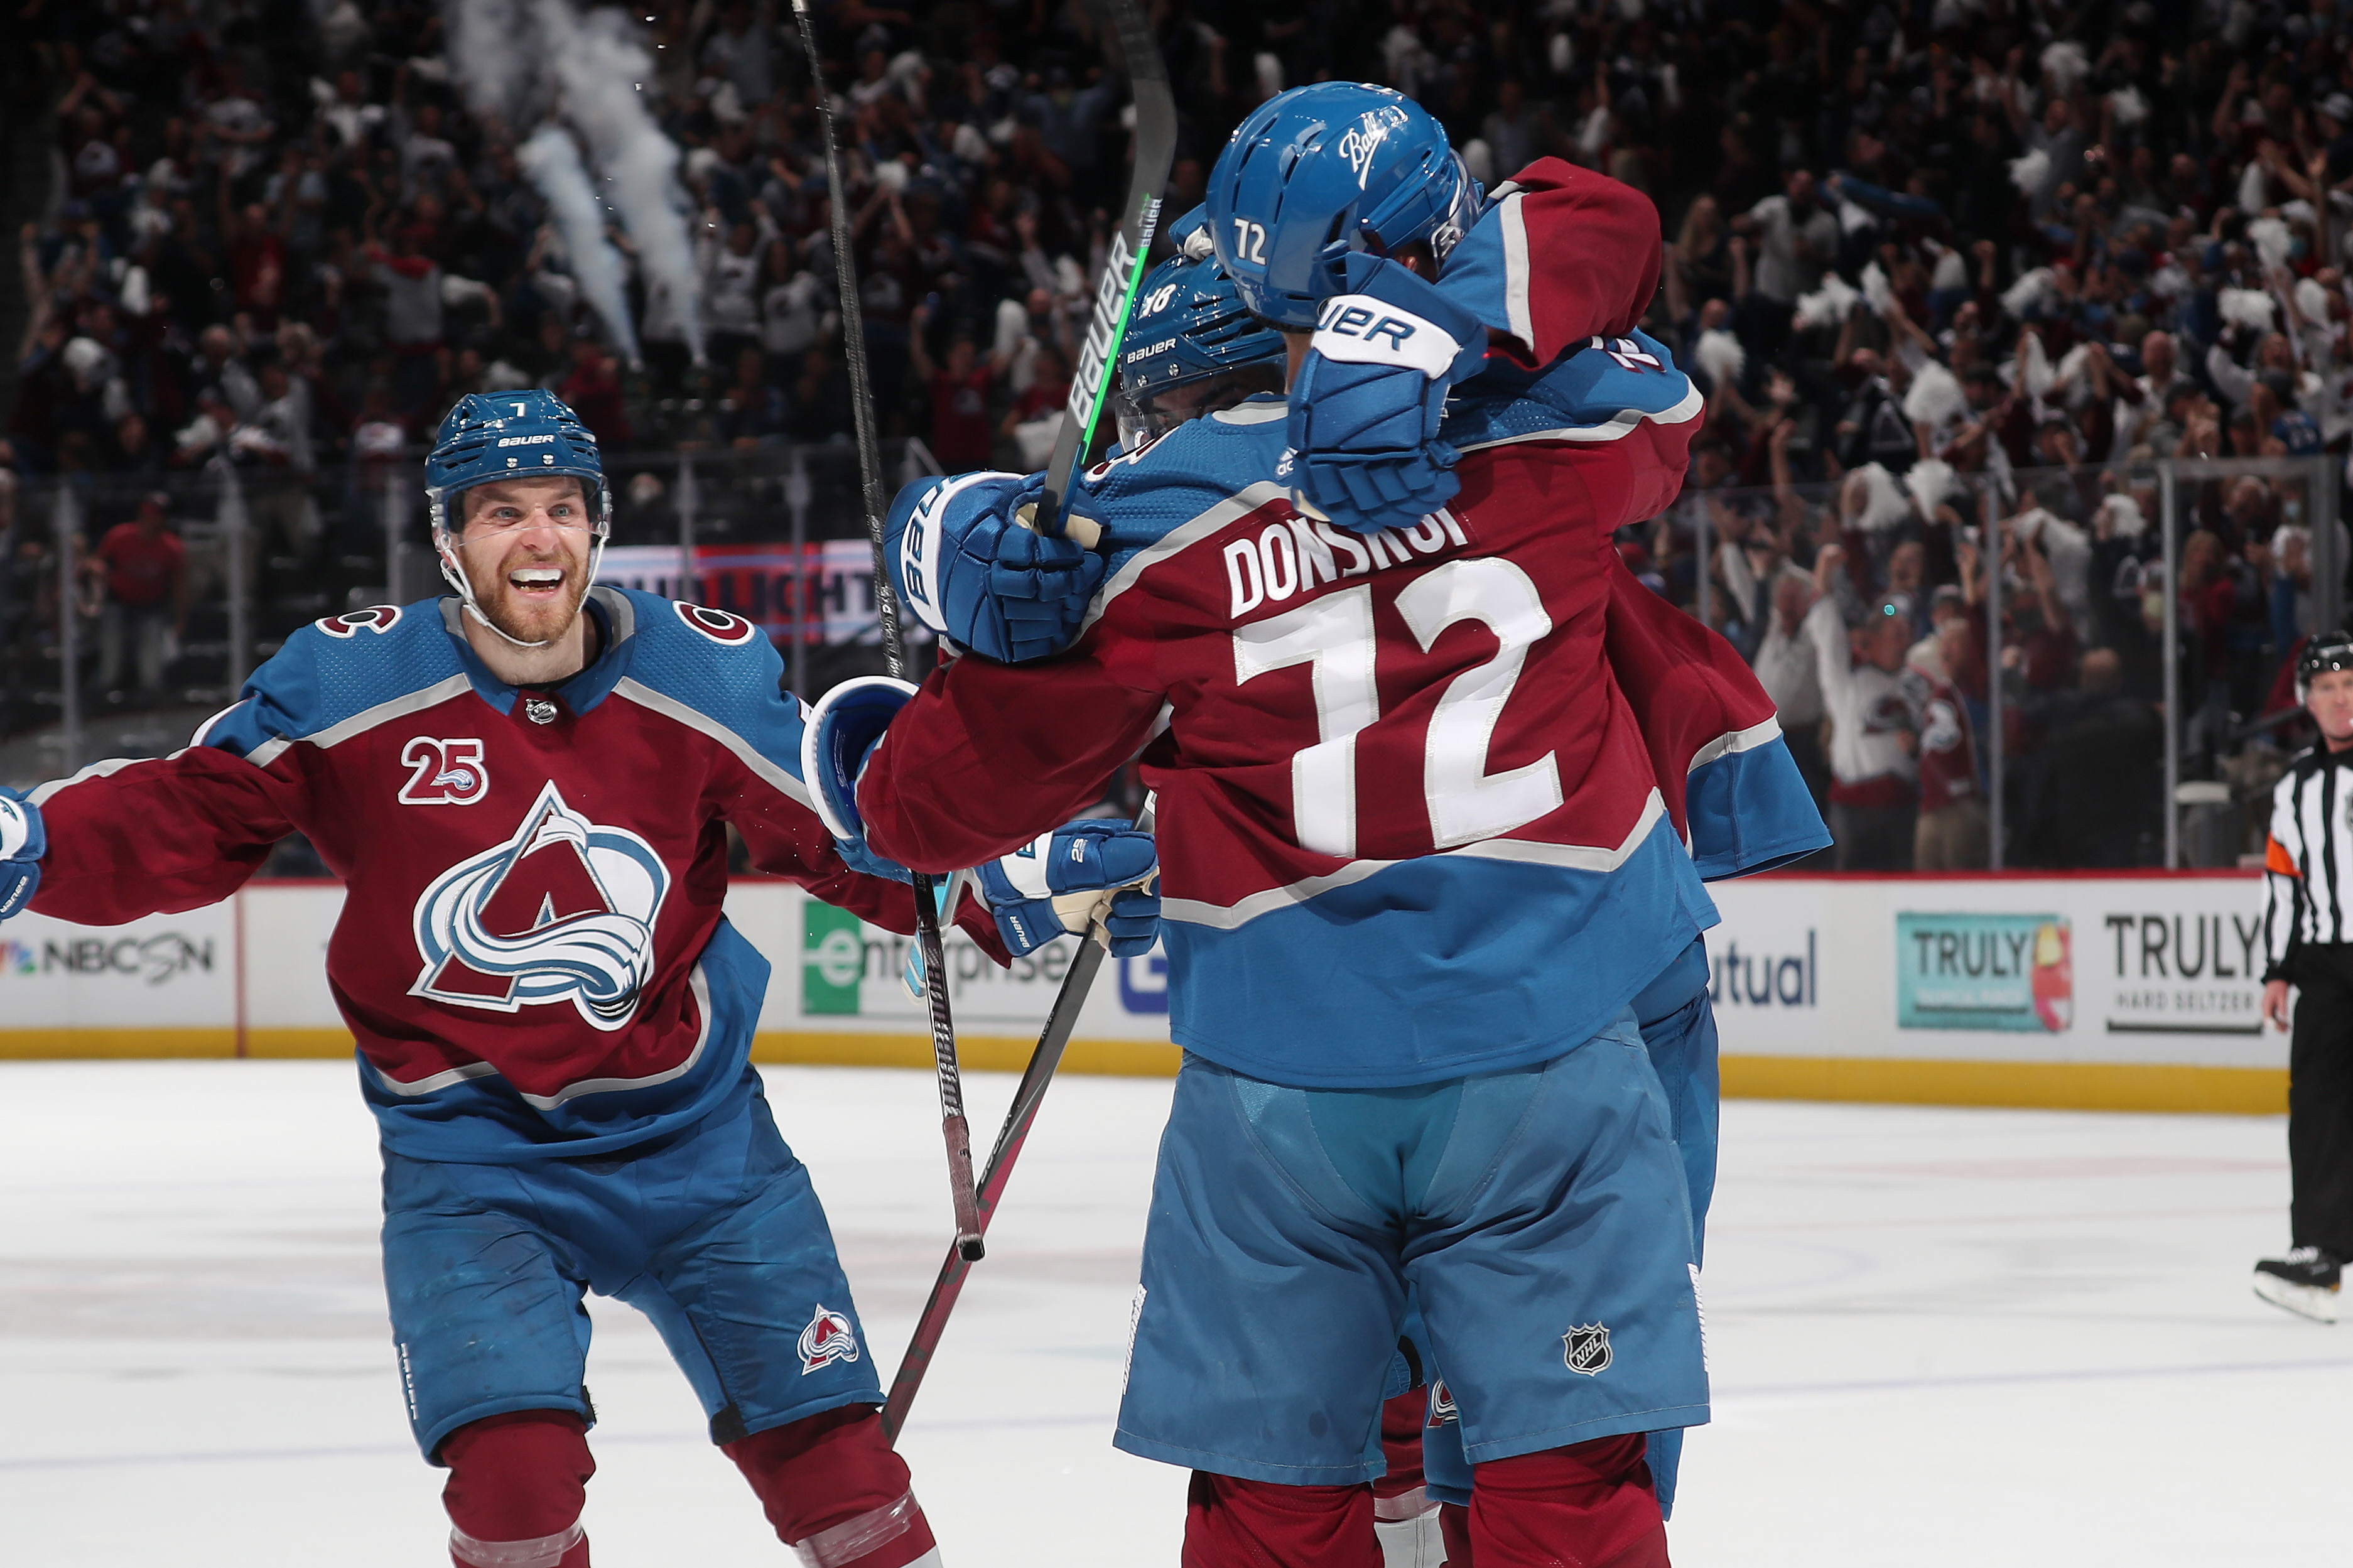 Joonas Donskoi #72 of the Colorado Avalanche celebrates a goal against the Vegas Golden Knights with teammates Alex Newhook #18 and Brandon Saad #20 in Game Five of the Second Round of the 2021 Stanley Cup Playoffs at Ball Arena on June 08, 2021 in Denver, Colorado.